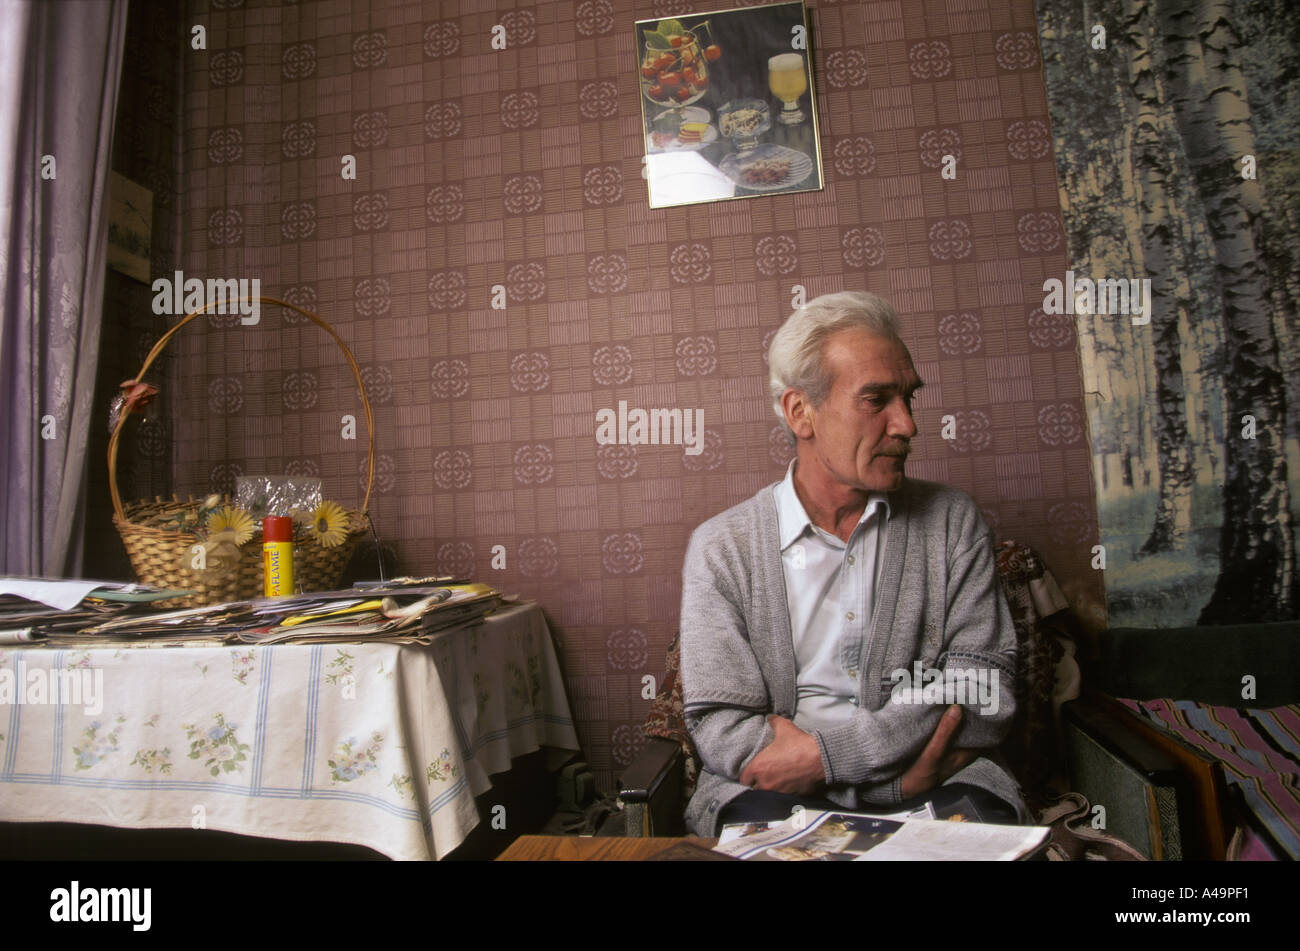 man who saved the earth stanislav petrov former soviet military prevented potential nuclear launch in his apartment - Stock Image